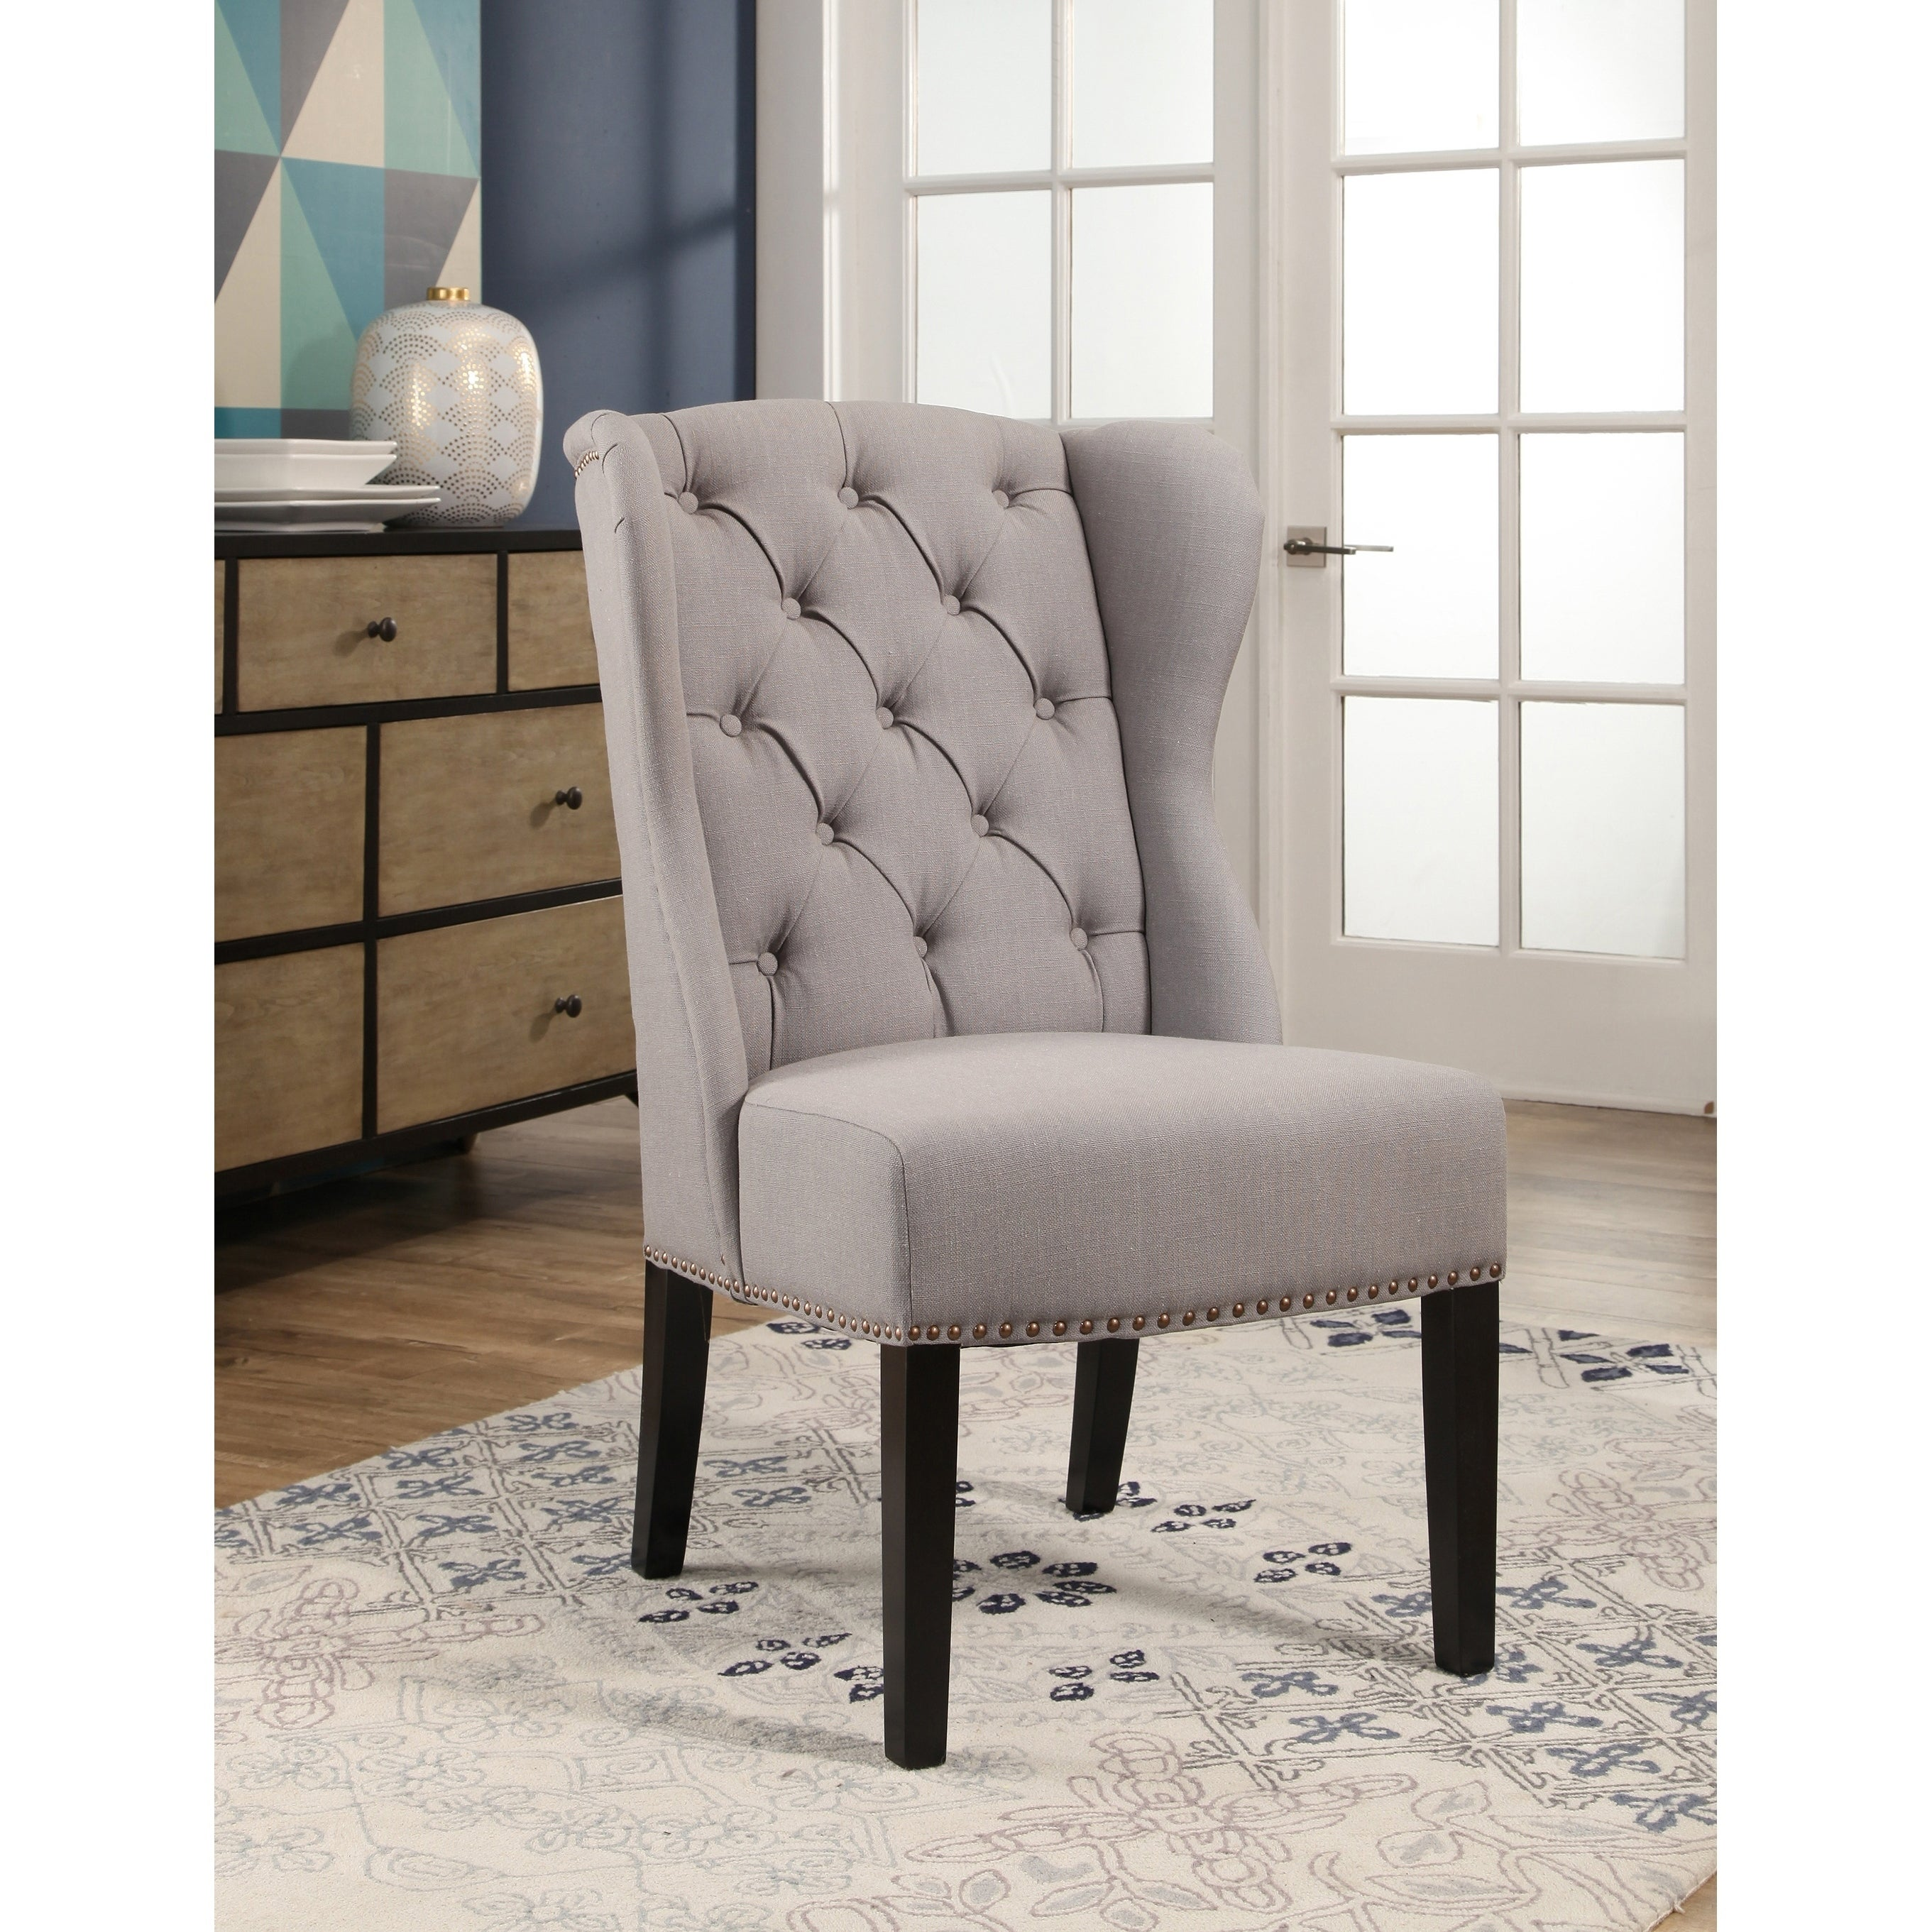 Wingback Chairs Kitchen Dining Room Chairs For Less Overstockcom